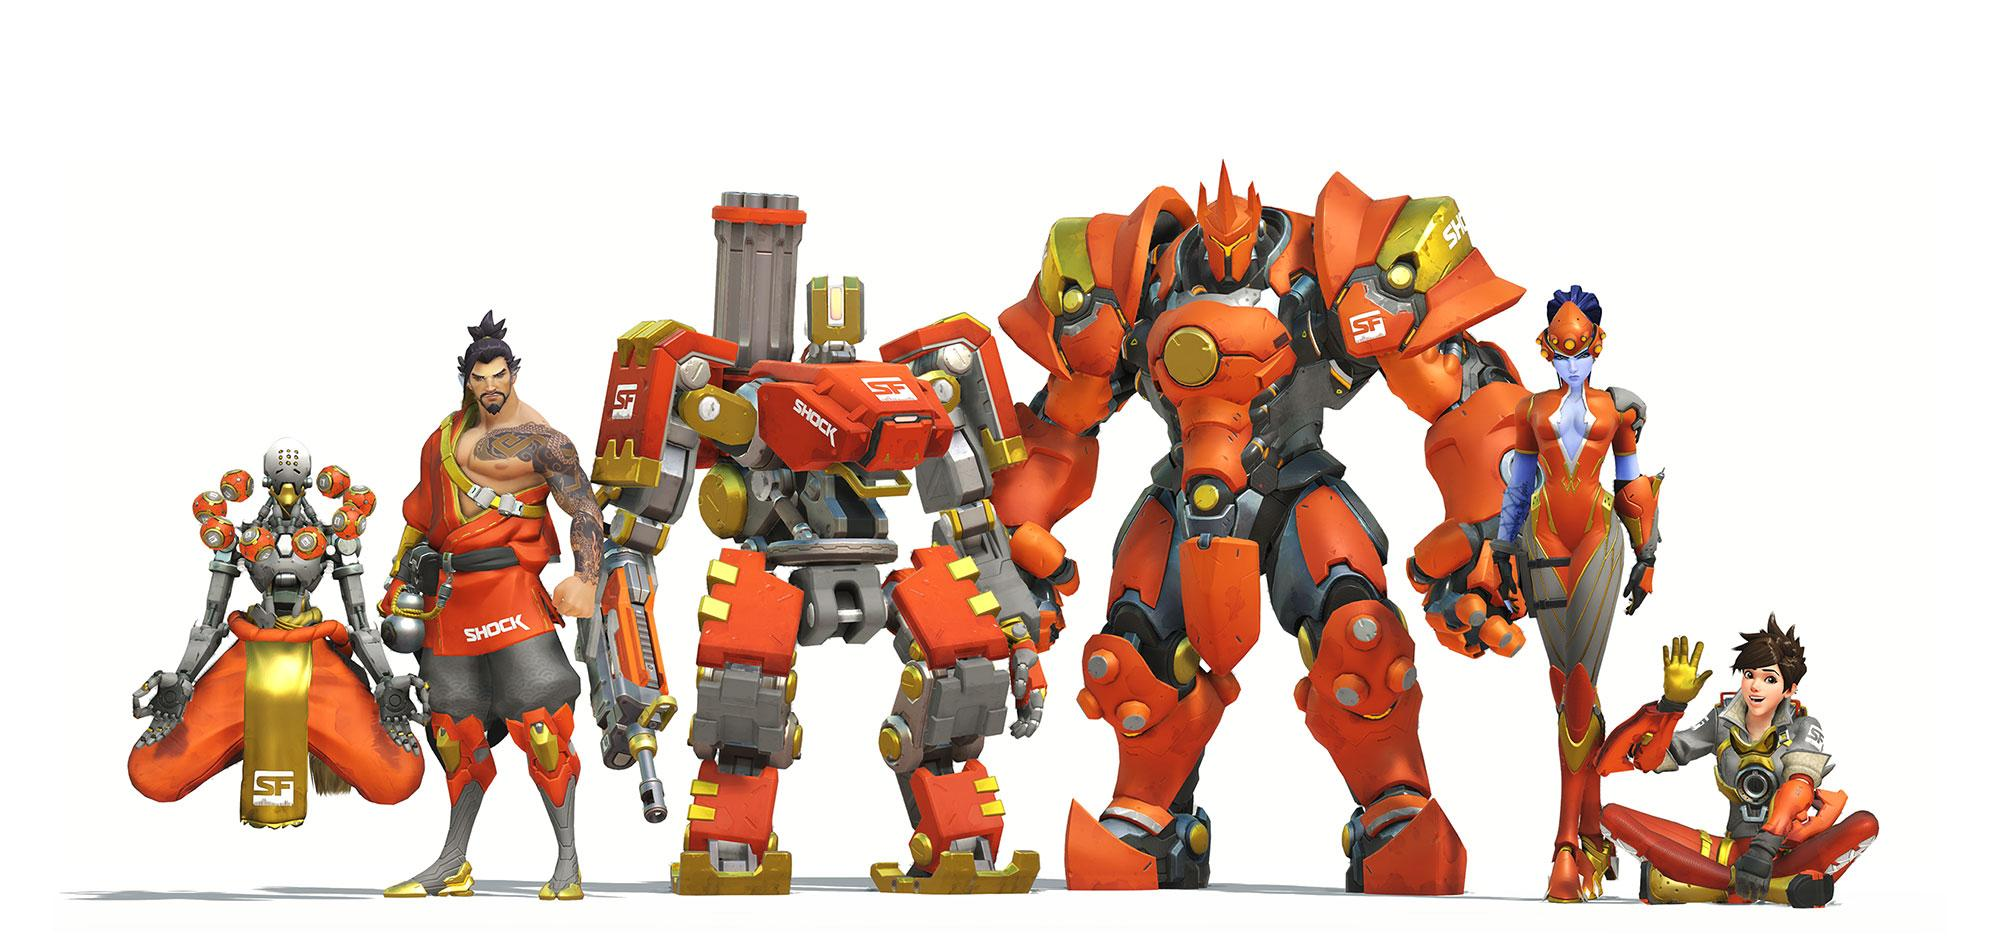 Overwatch League Orange Skins